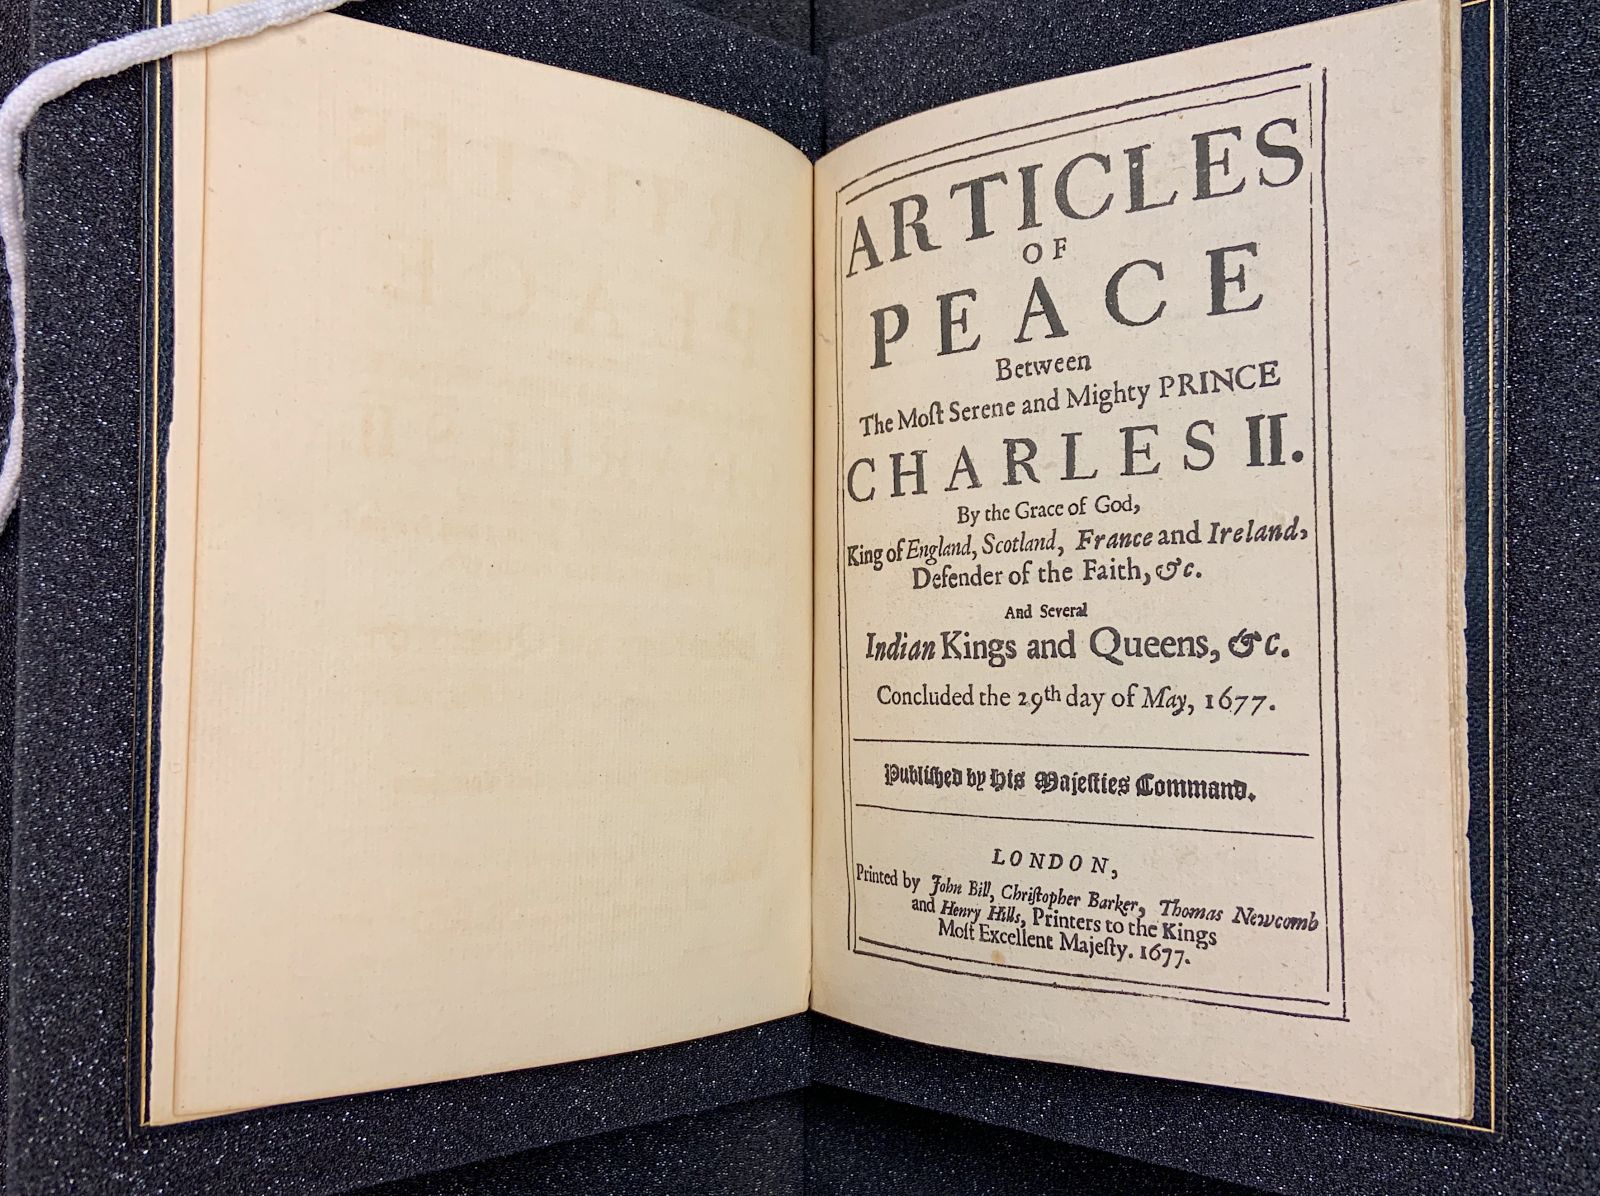 "A title-page spread of a short, small volume. Within a border outline on the right page, the title reads, ""Articles of Peace Between The Most Serene and Mighty PRINCE CHARLES II..."""